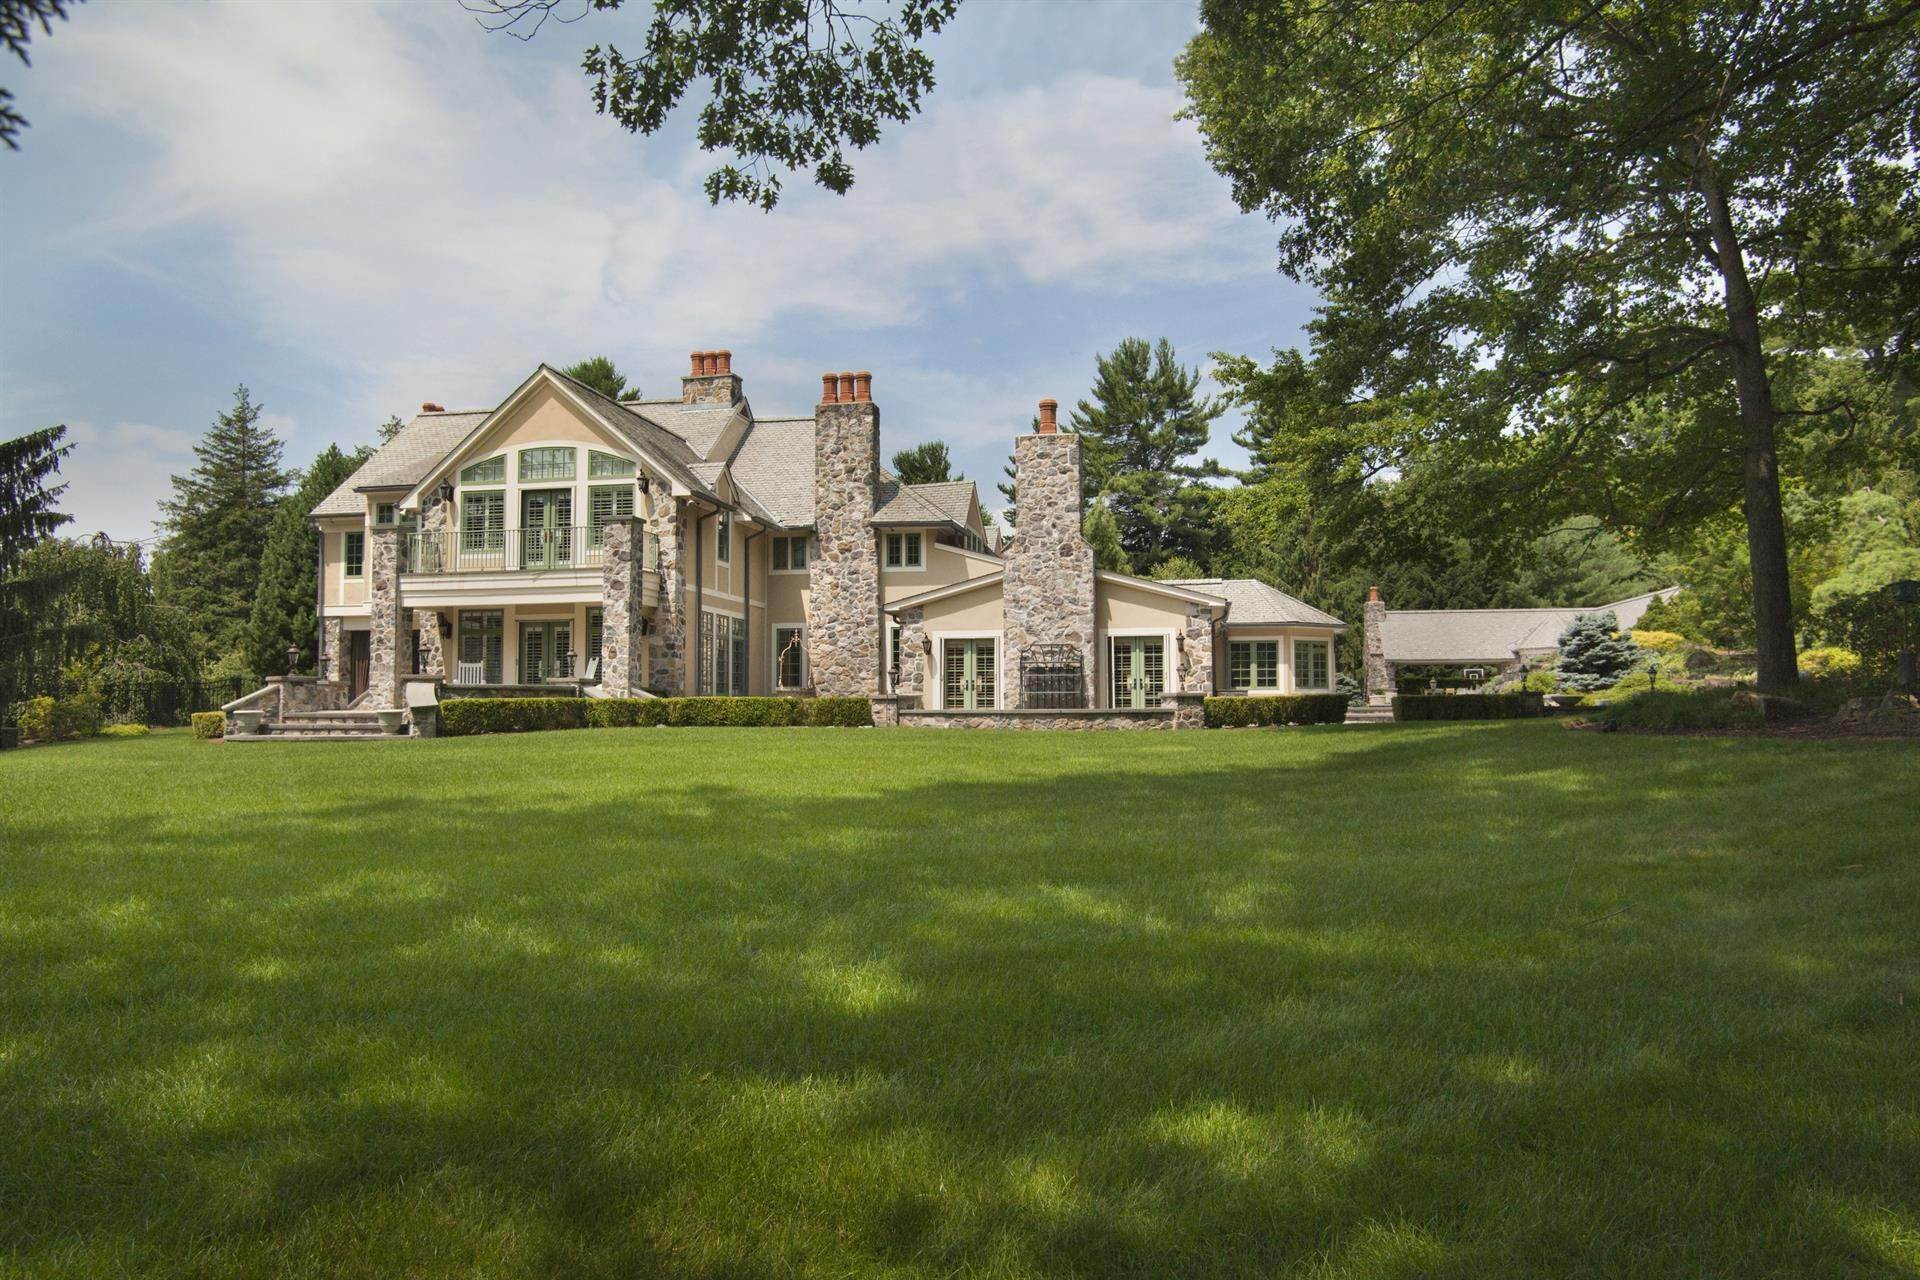 Single Family Home 為 出售 在 Celebrity Stunner - 5+ Acre Family Compound Saddle River, 新澤西州,07458 美國